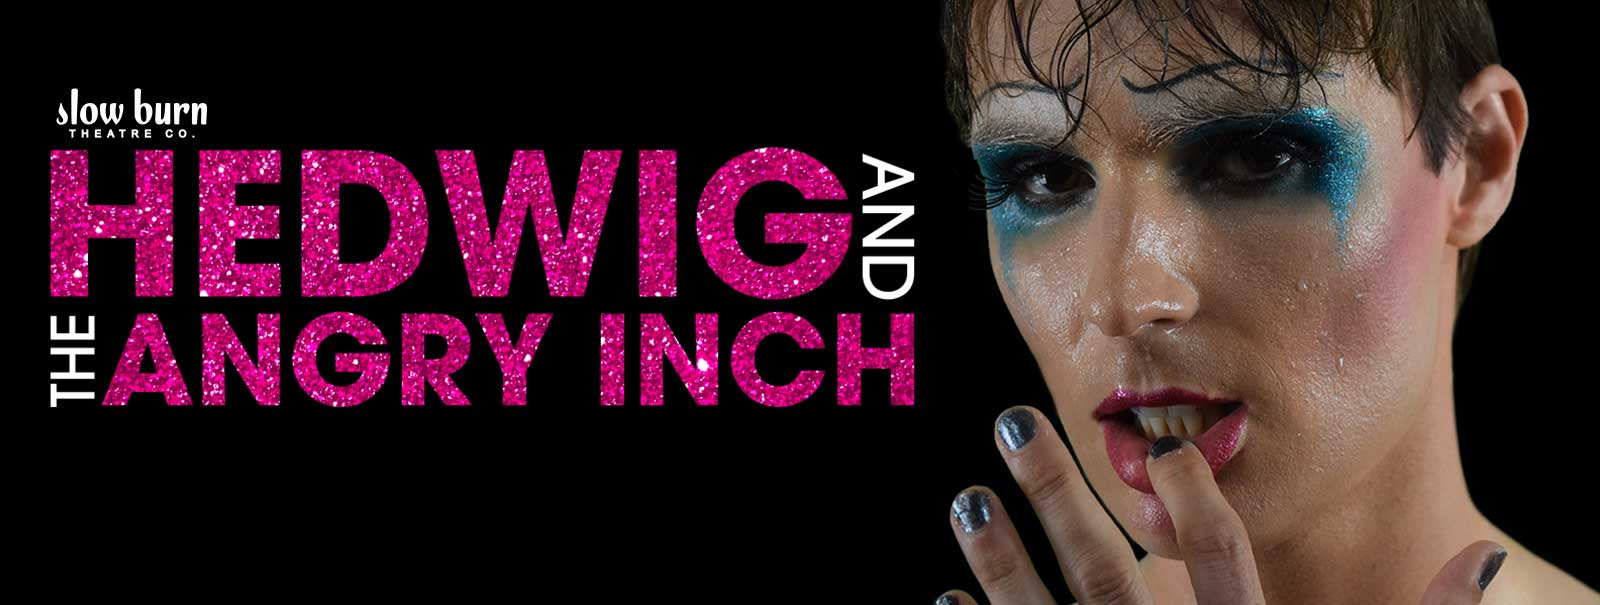 More Info - Slow Burn Theatre Co: Hedwig and the Angry Inch